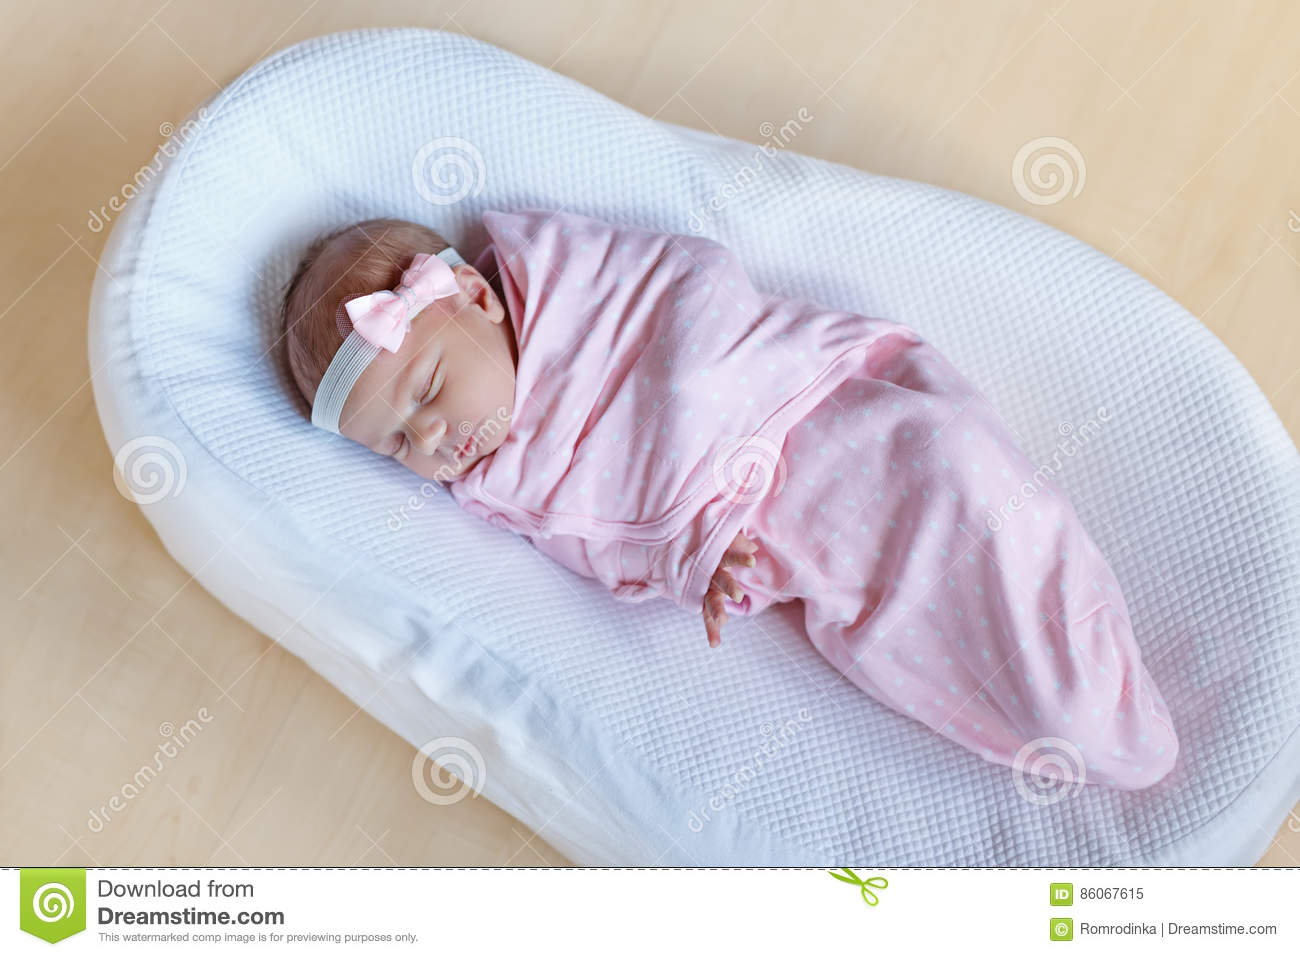 one week old newborn baby girl sleeping wrapped in blanket